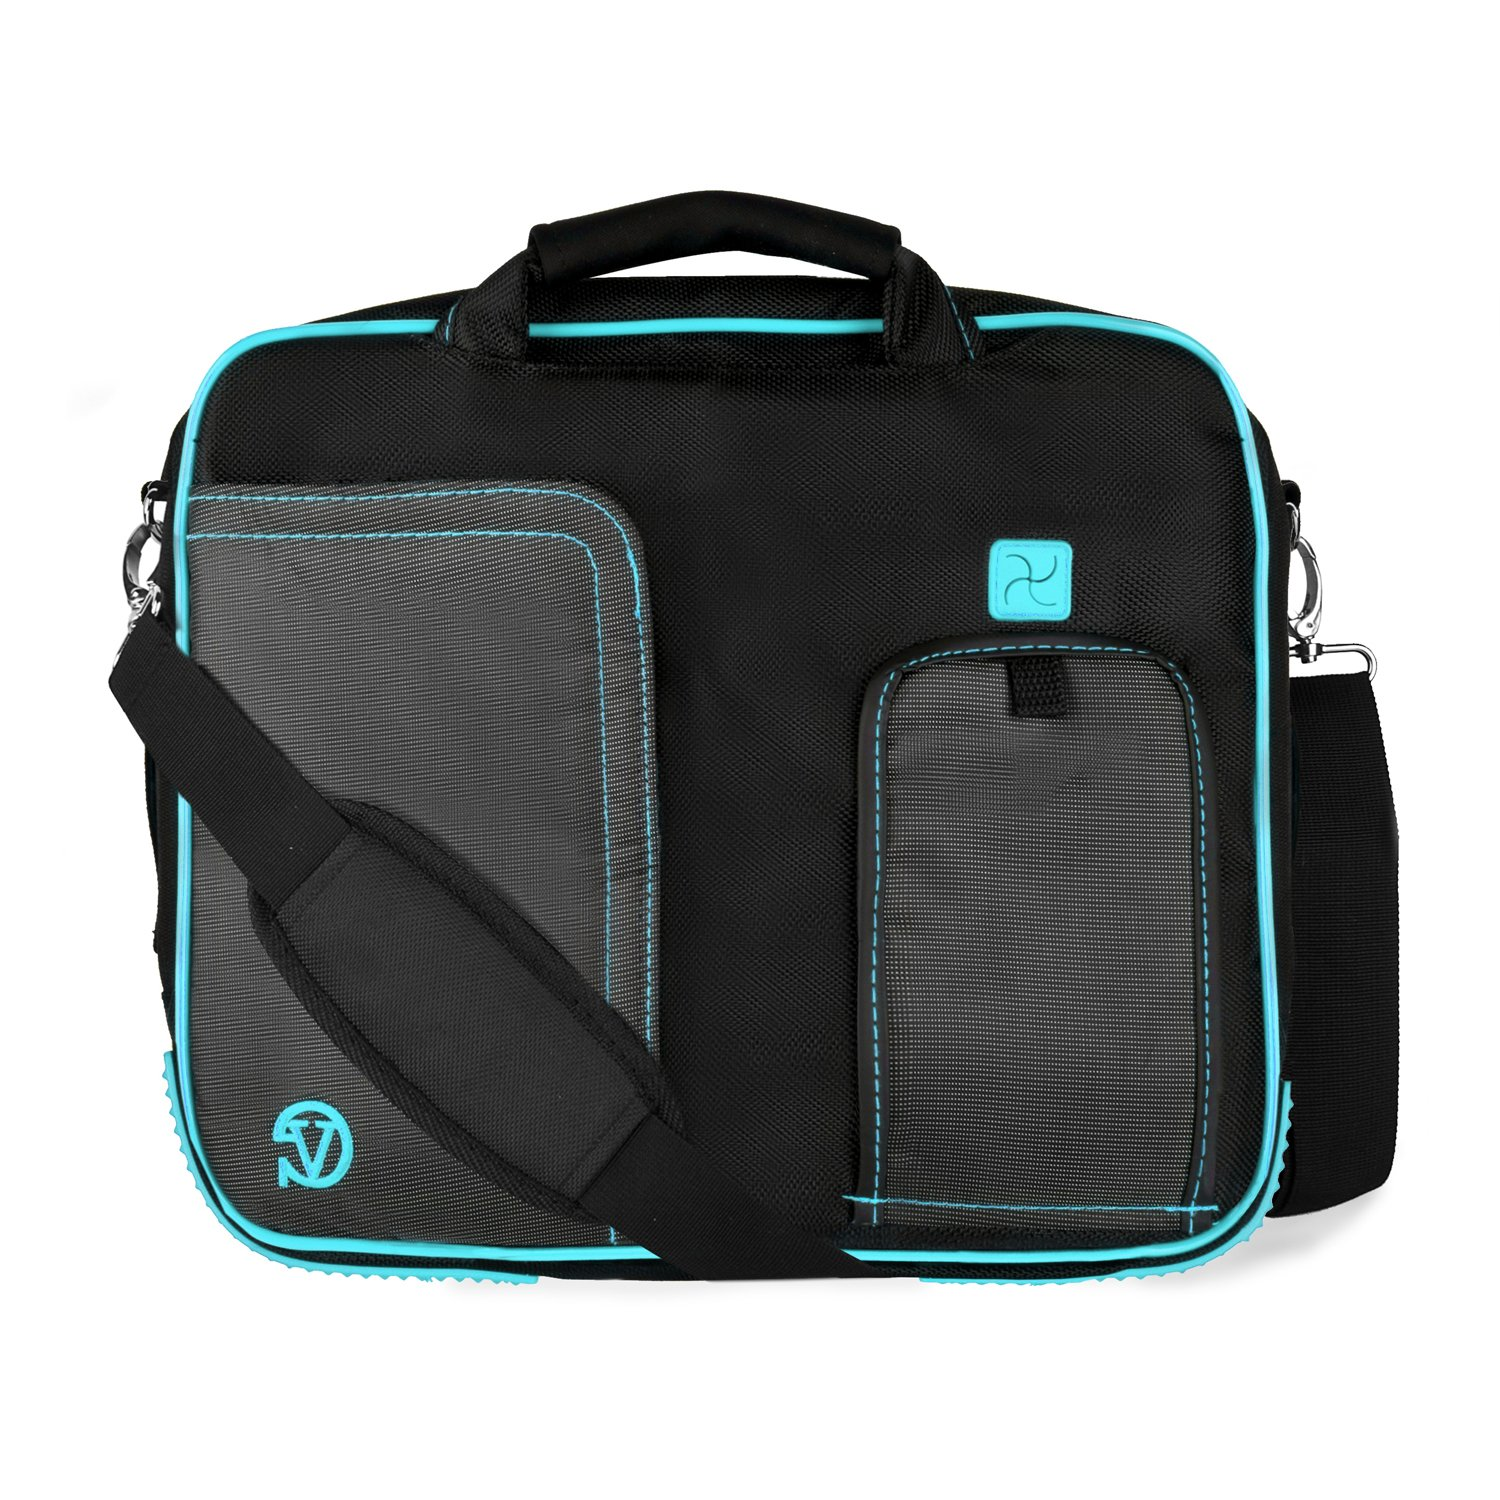 Pindar Ornate Messenger Bag [Aqua] For Dell Inspiron, XPS, Latitude & ChromeBook 11 to 13.3-inch Laptops by Vangoddy